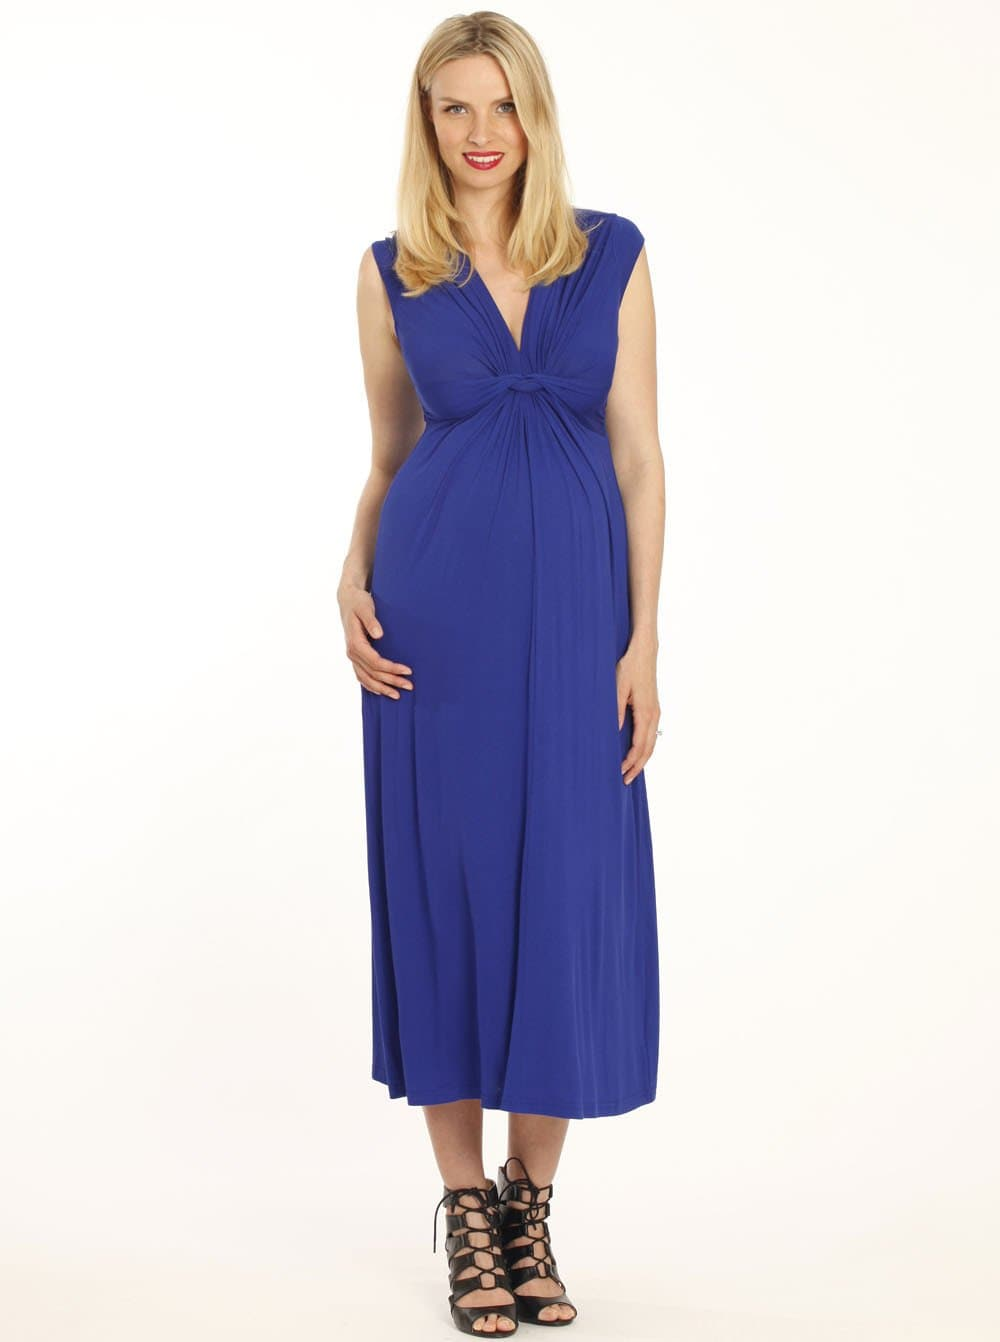 Irene Maternity Front Knot Maxi Dress - Dark Navy - Angel Maternity - Maternity clothes - shop online